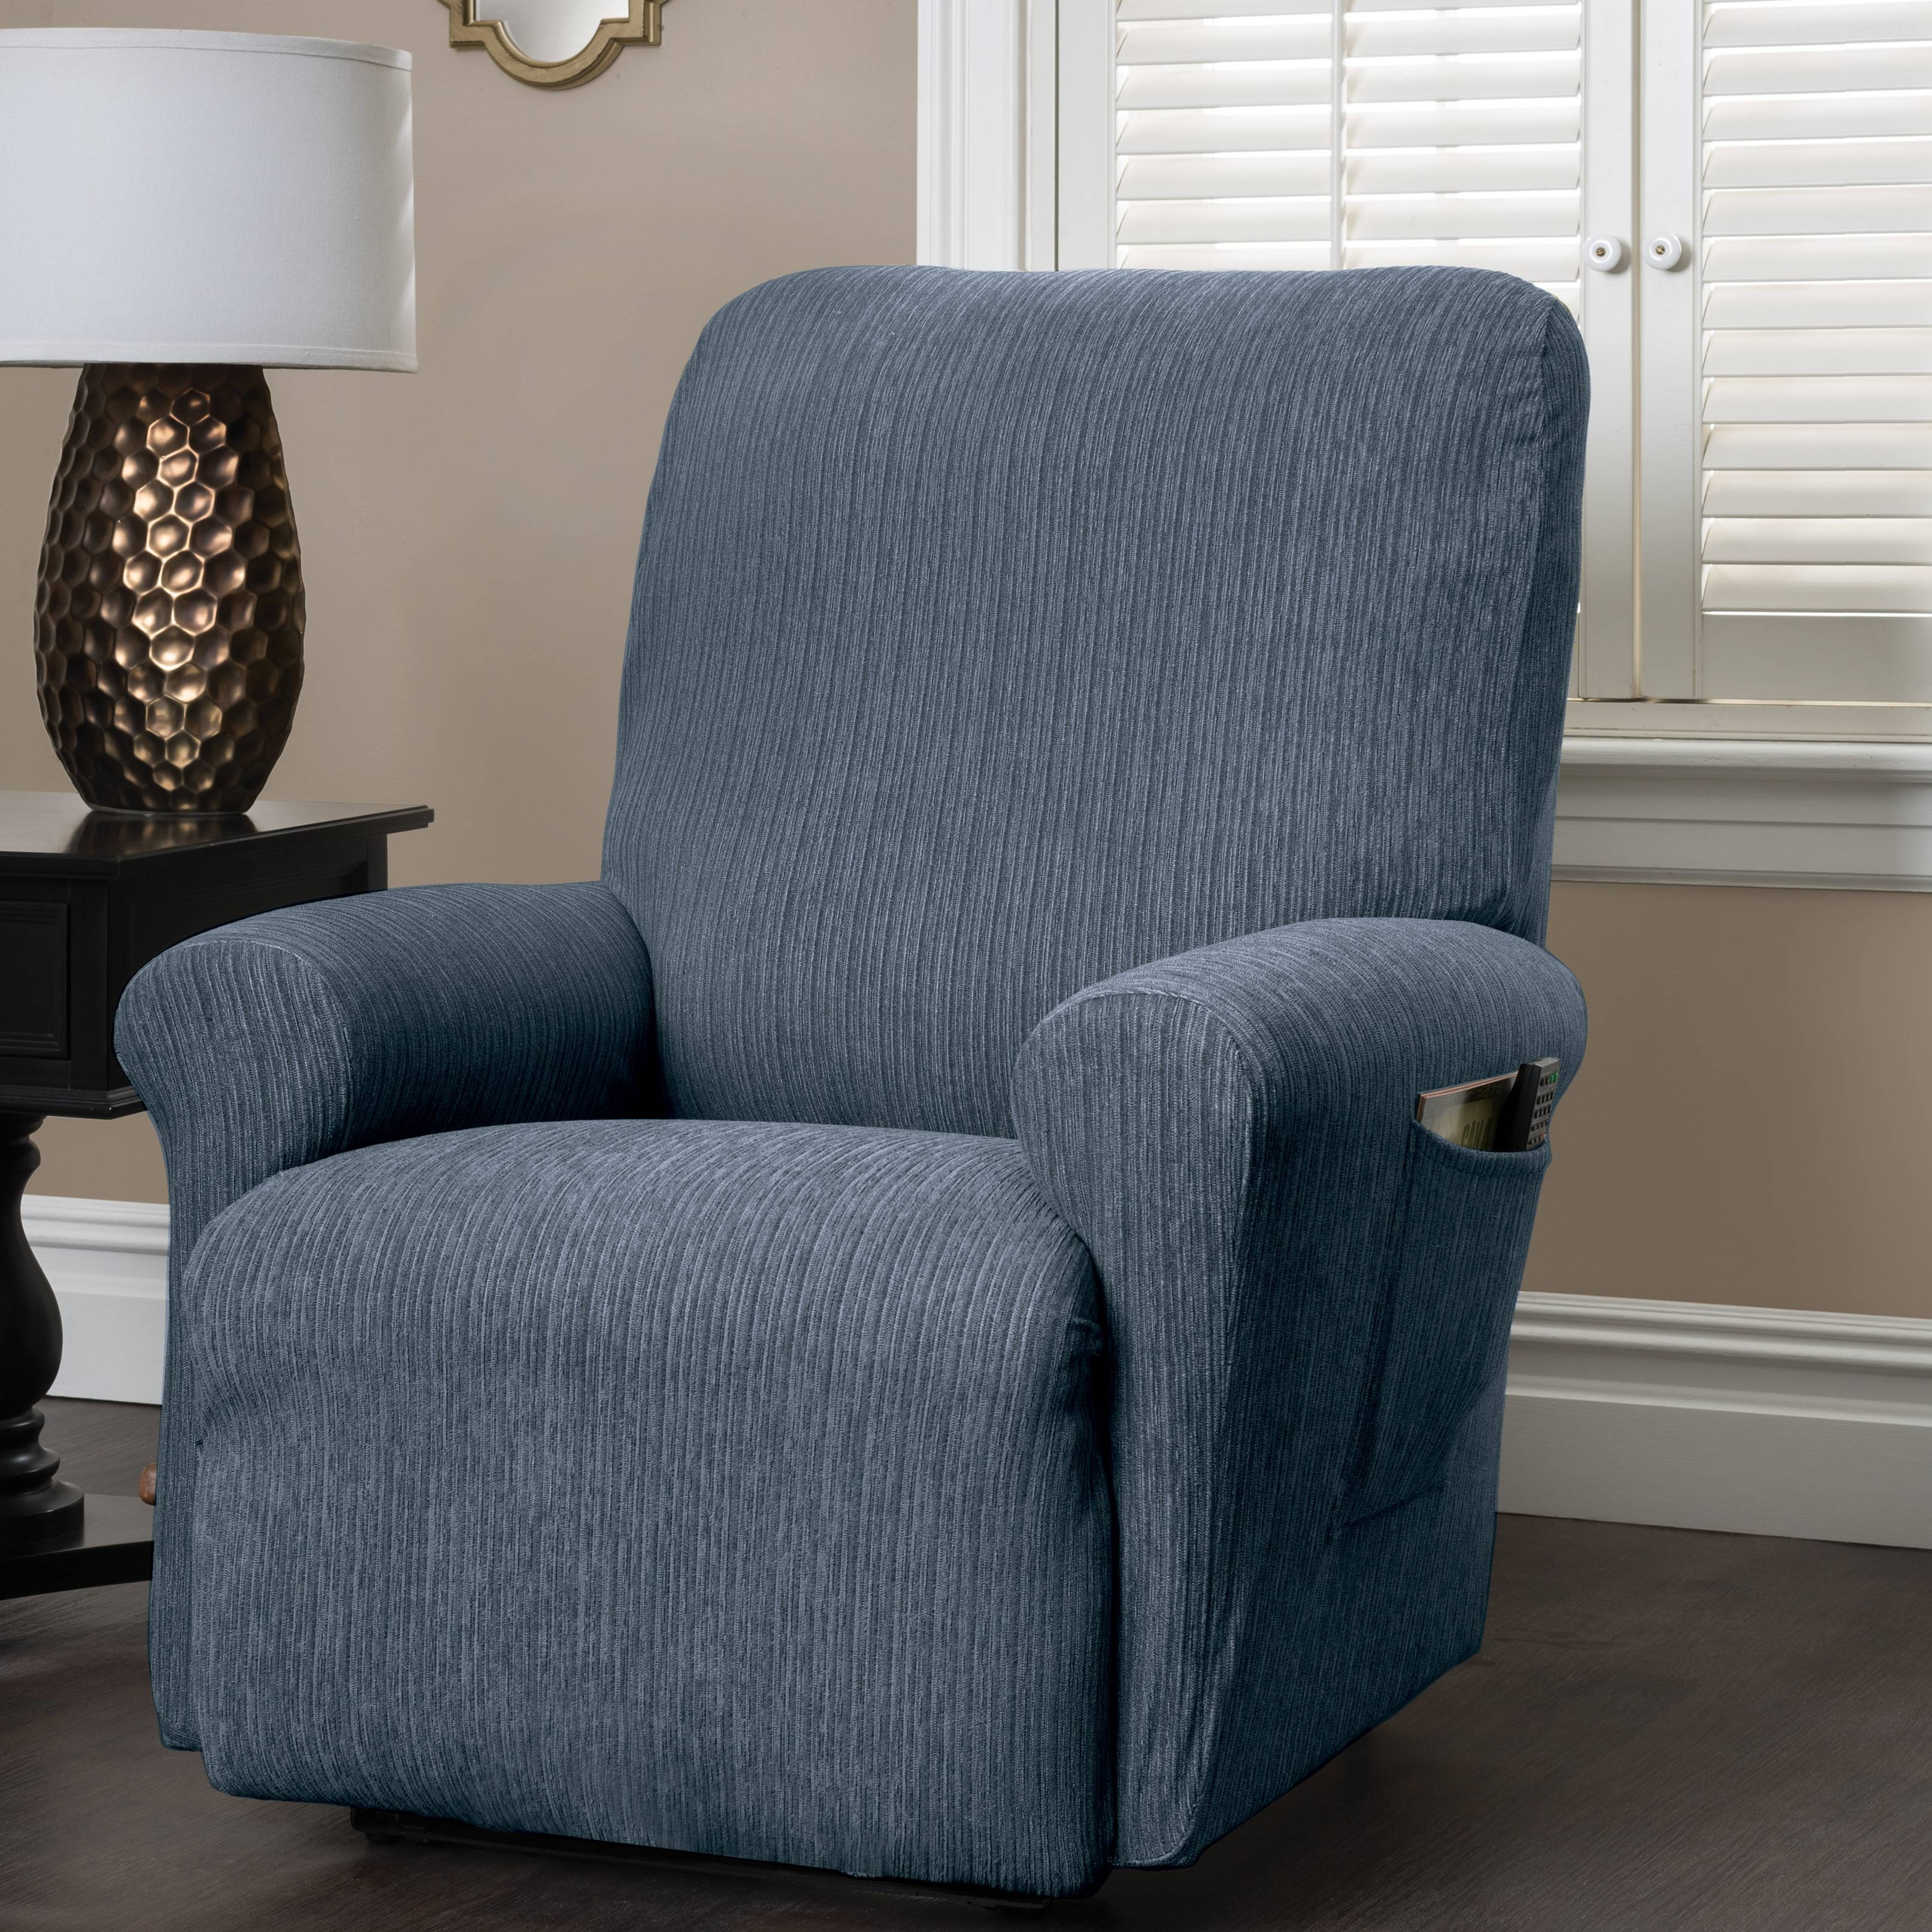 Furniture & Rug: Chic Recliner Covers For Prettier Recliner Ideas With Regard To Stretch Covers For Recliners (View 7 of 15)